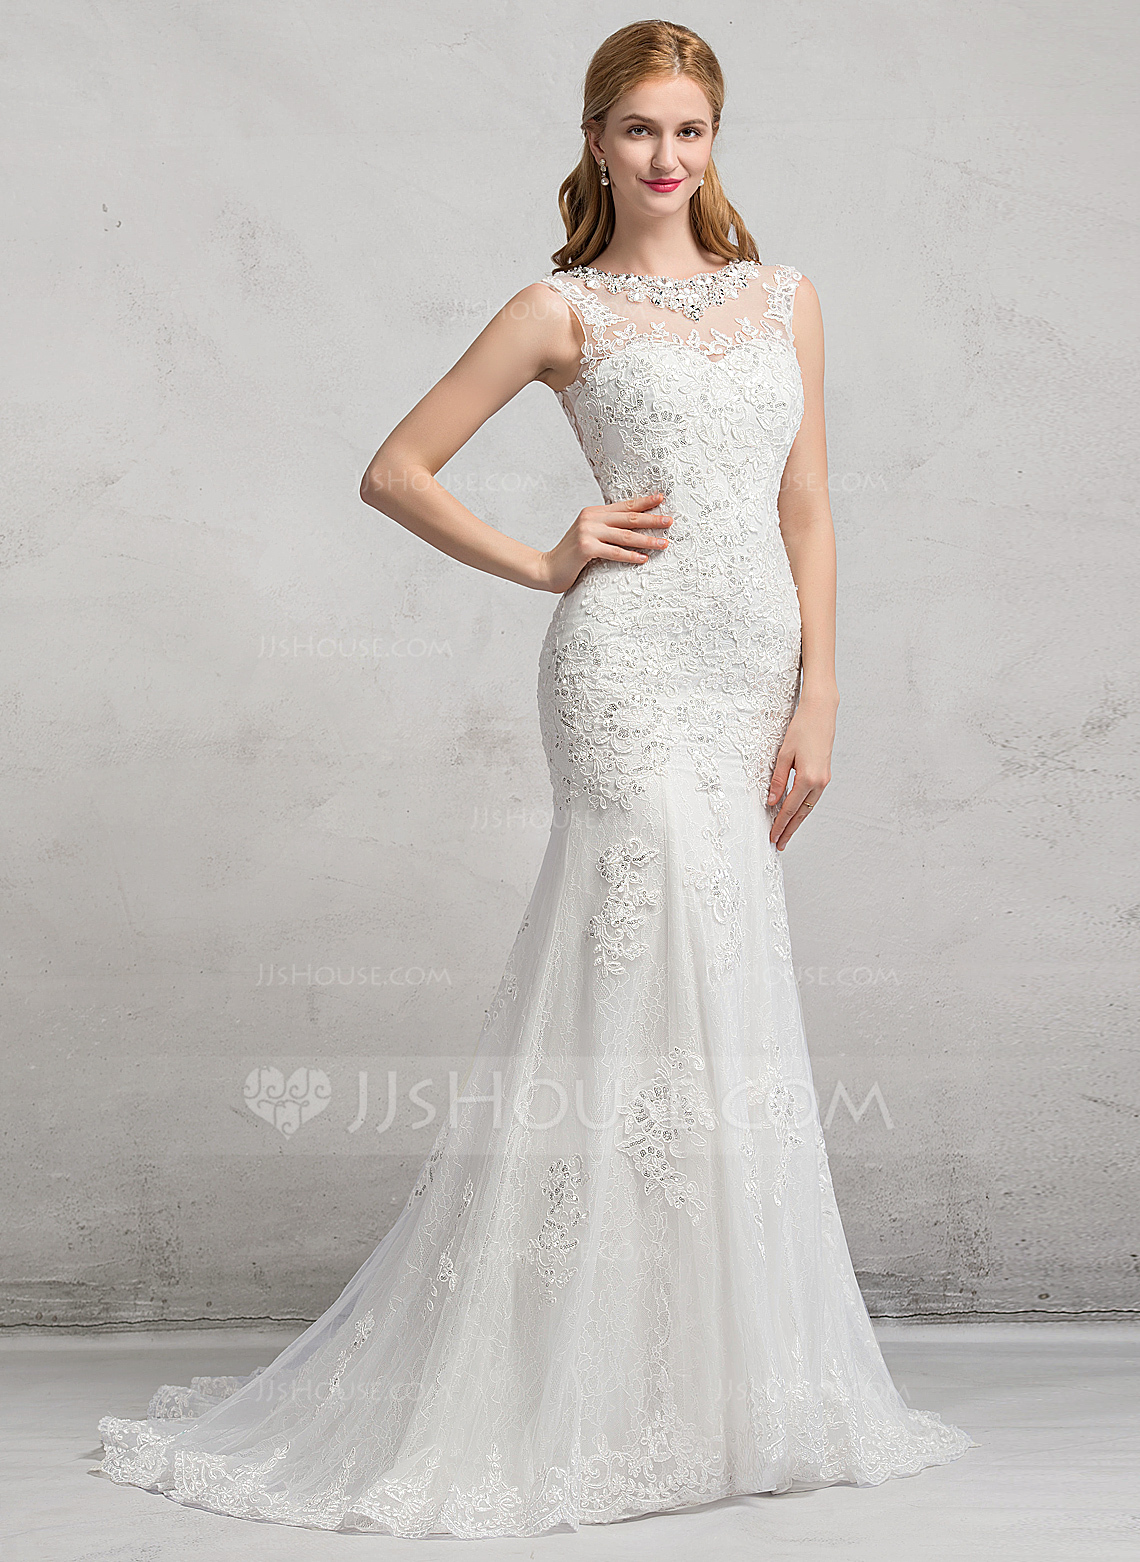 Trumpet Mermaid Scoop Neck Sweep Train Tulle Lace Wedding Dress With Beading Sequins g jjshouse wedding dress Home Wedding Dresses Loading zoom